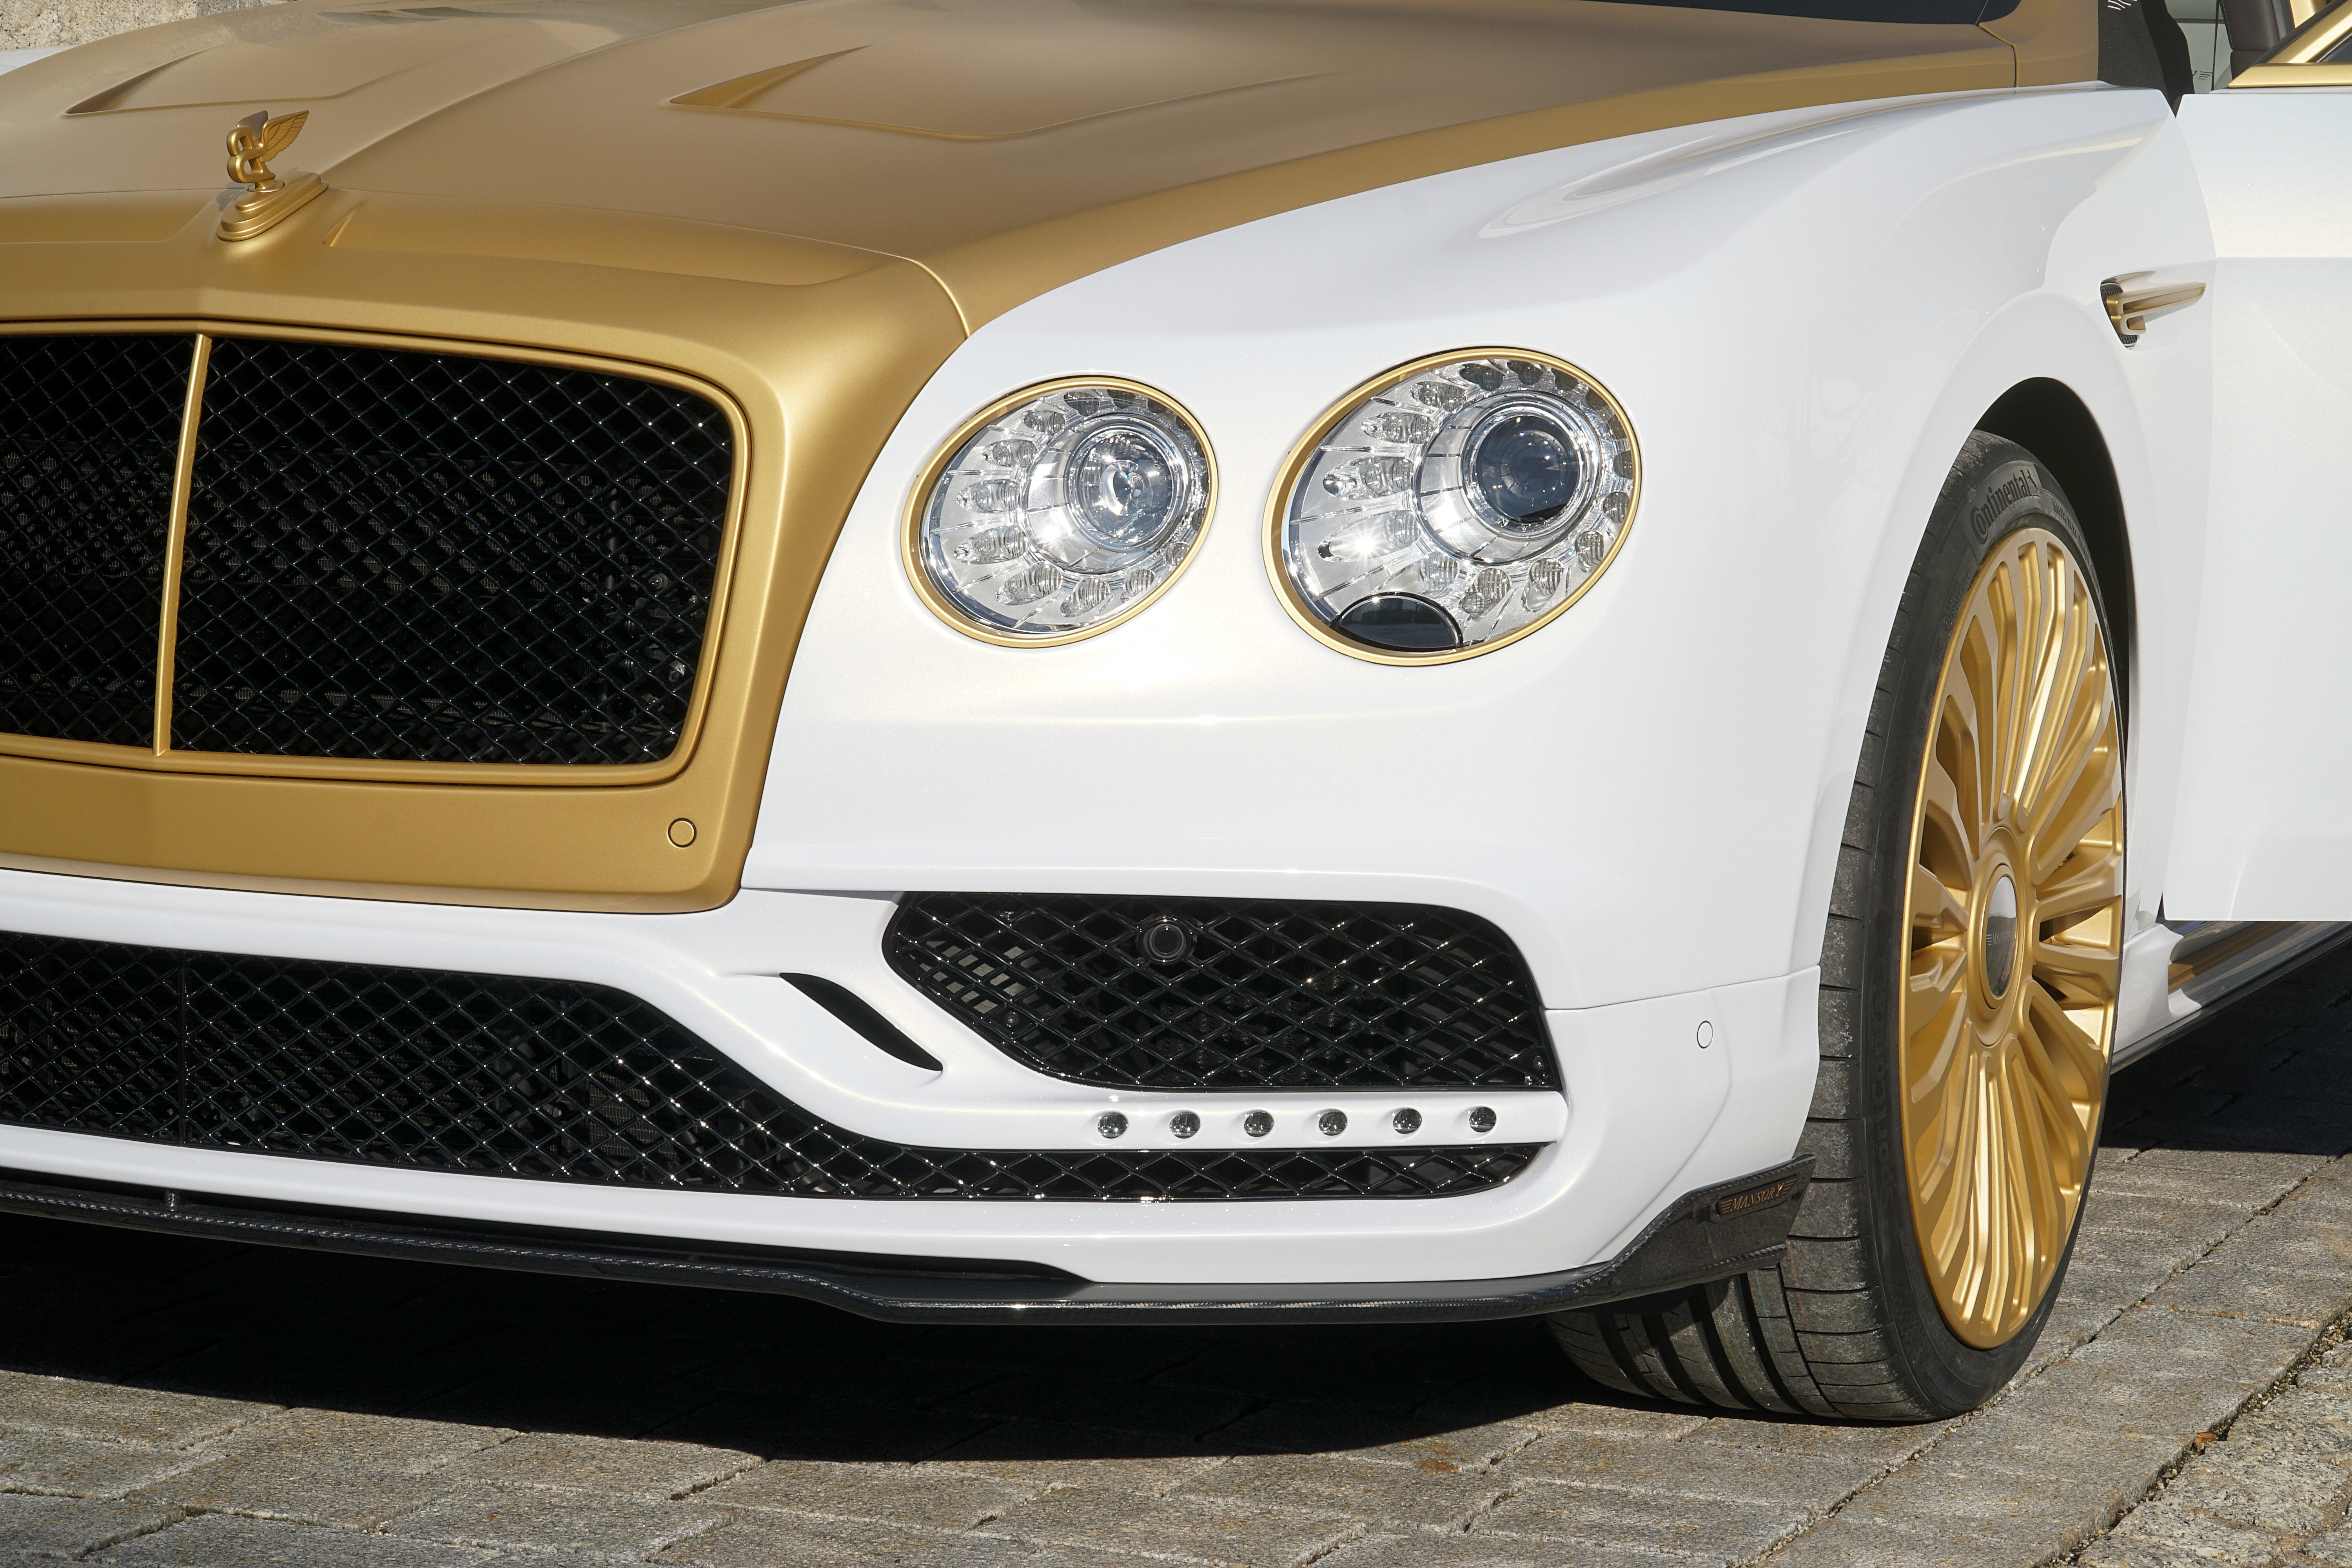 mansory_bentley_flying_spur_new_05.jpg